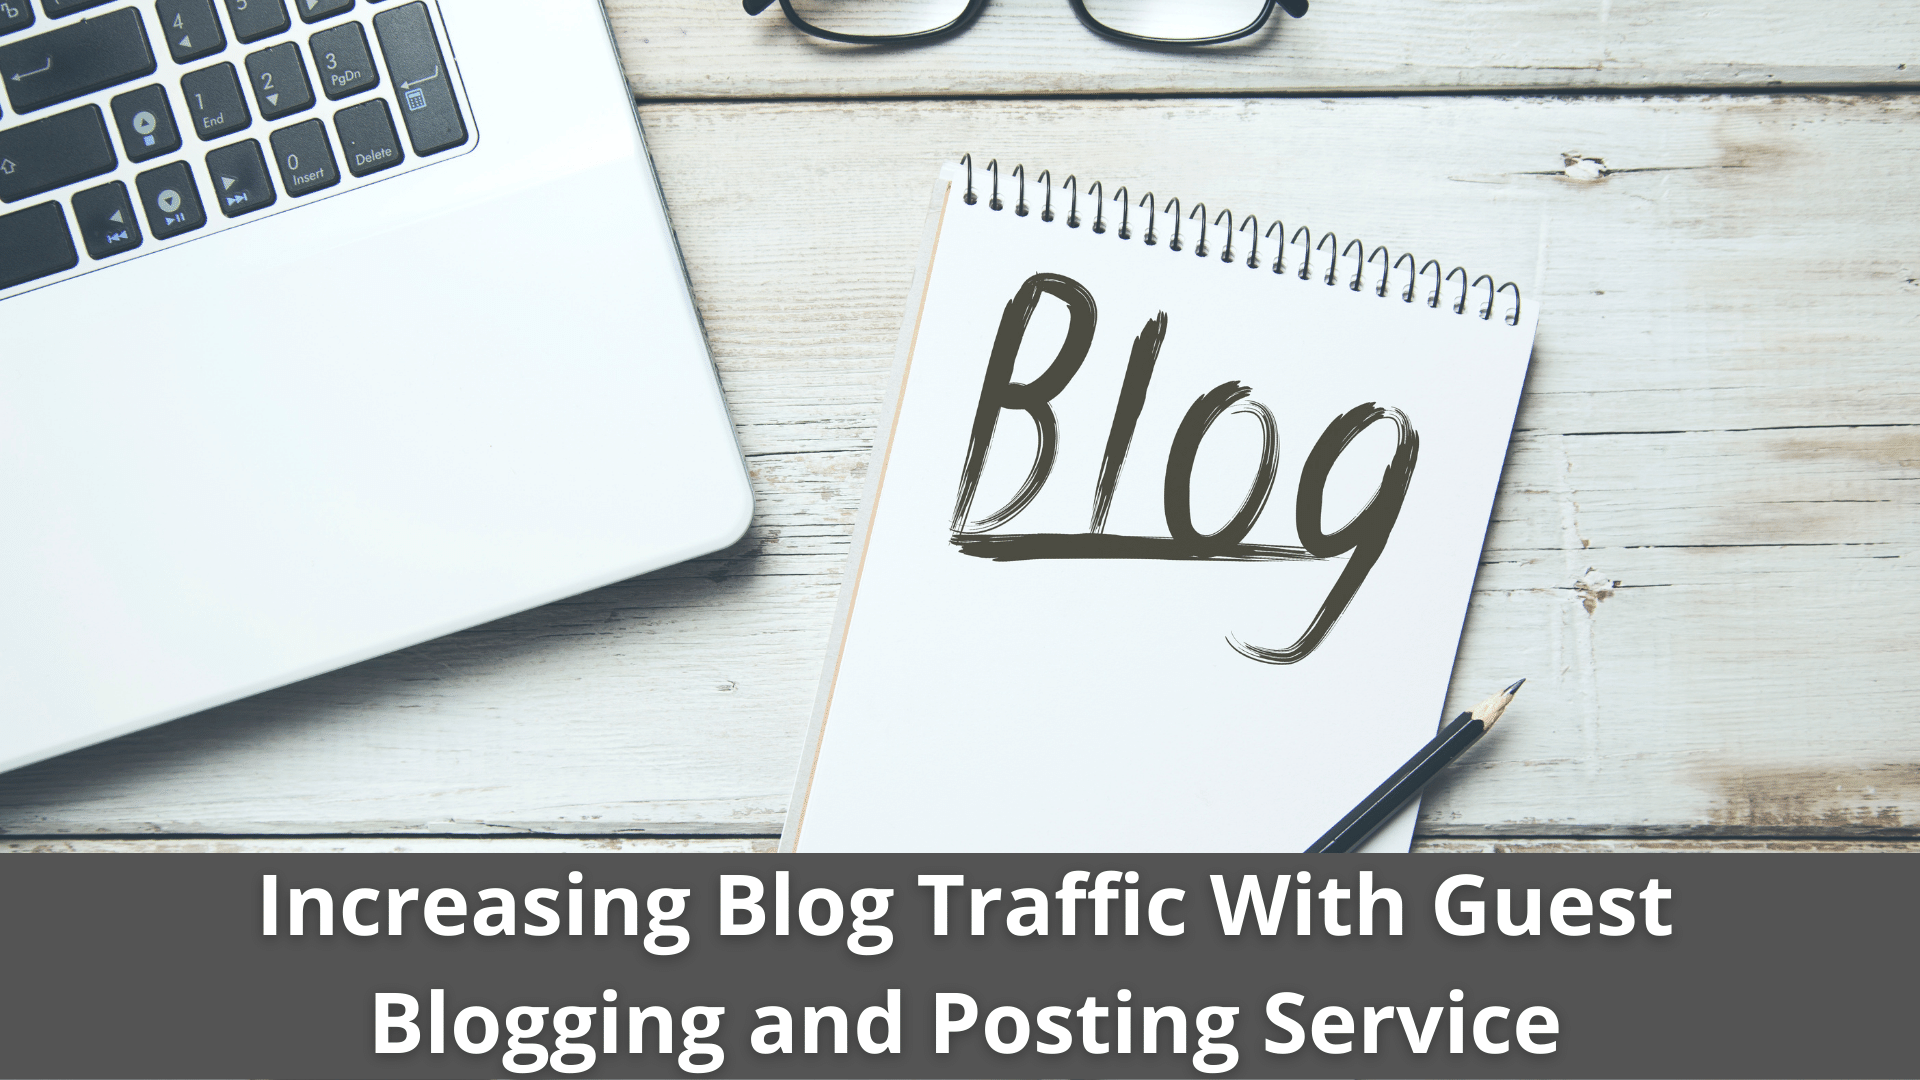 Benefits of Increasing Blog Traffic With Guest Blogging and Posting Service 39